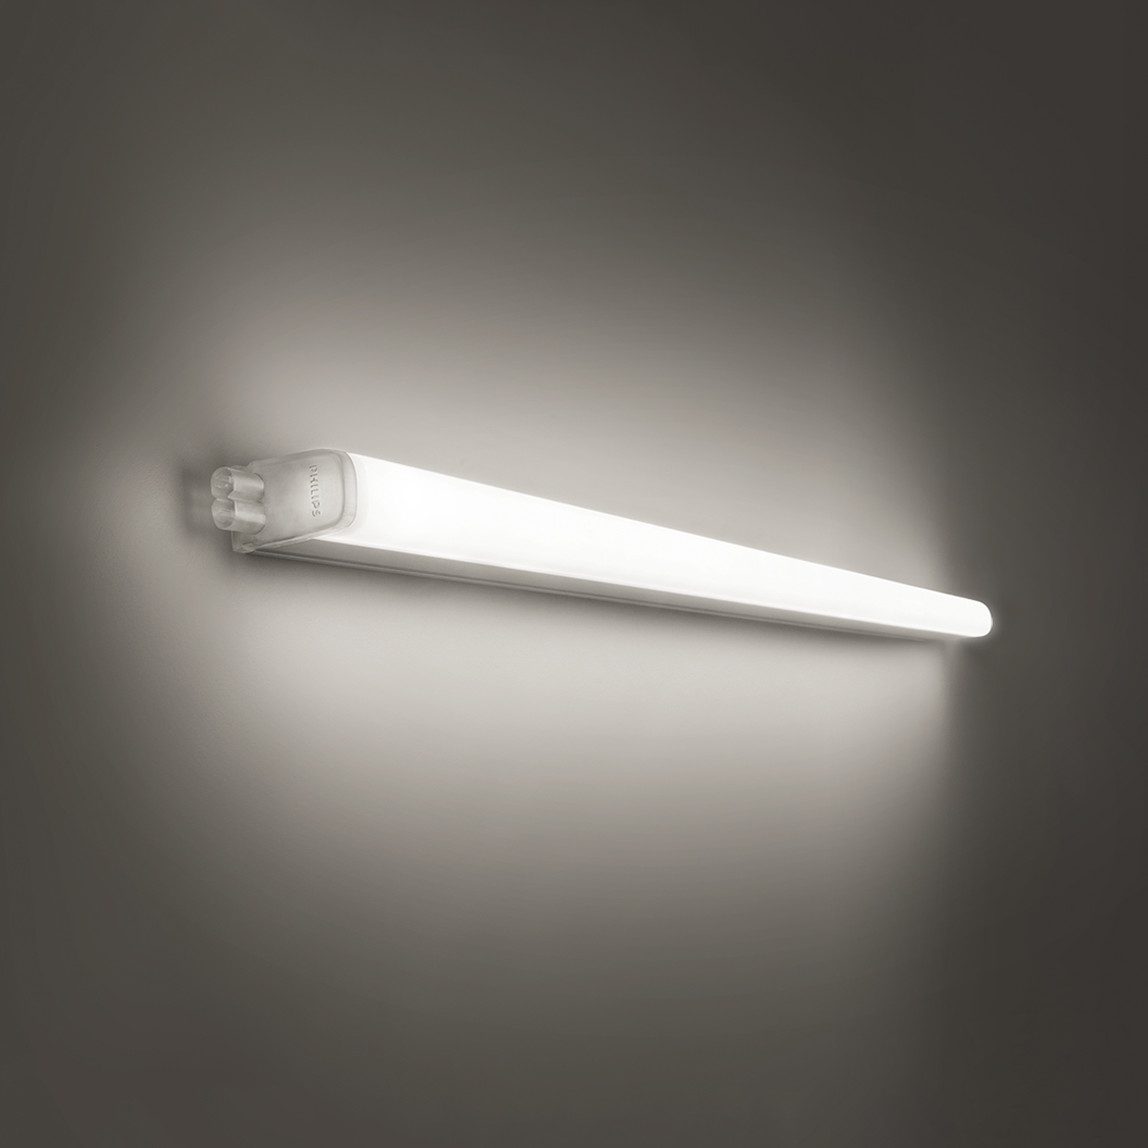 Philips Trunkable 1000 Lümen Led Beyaz Işık